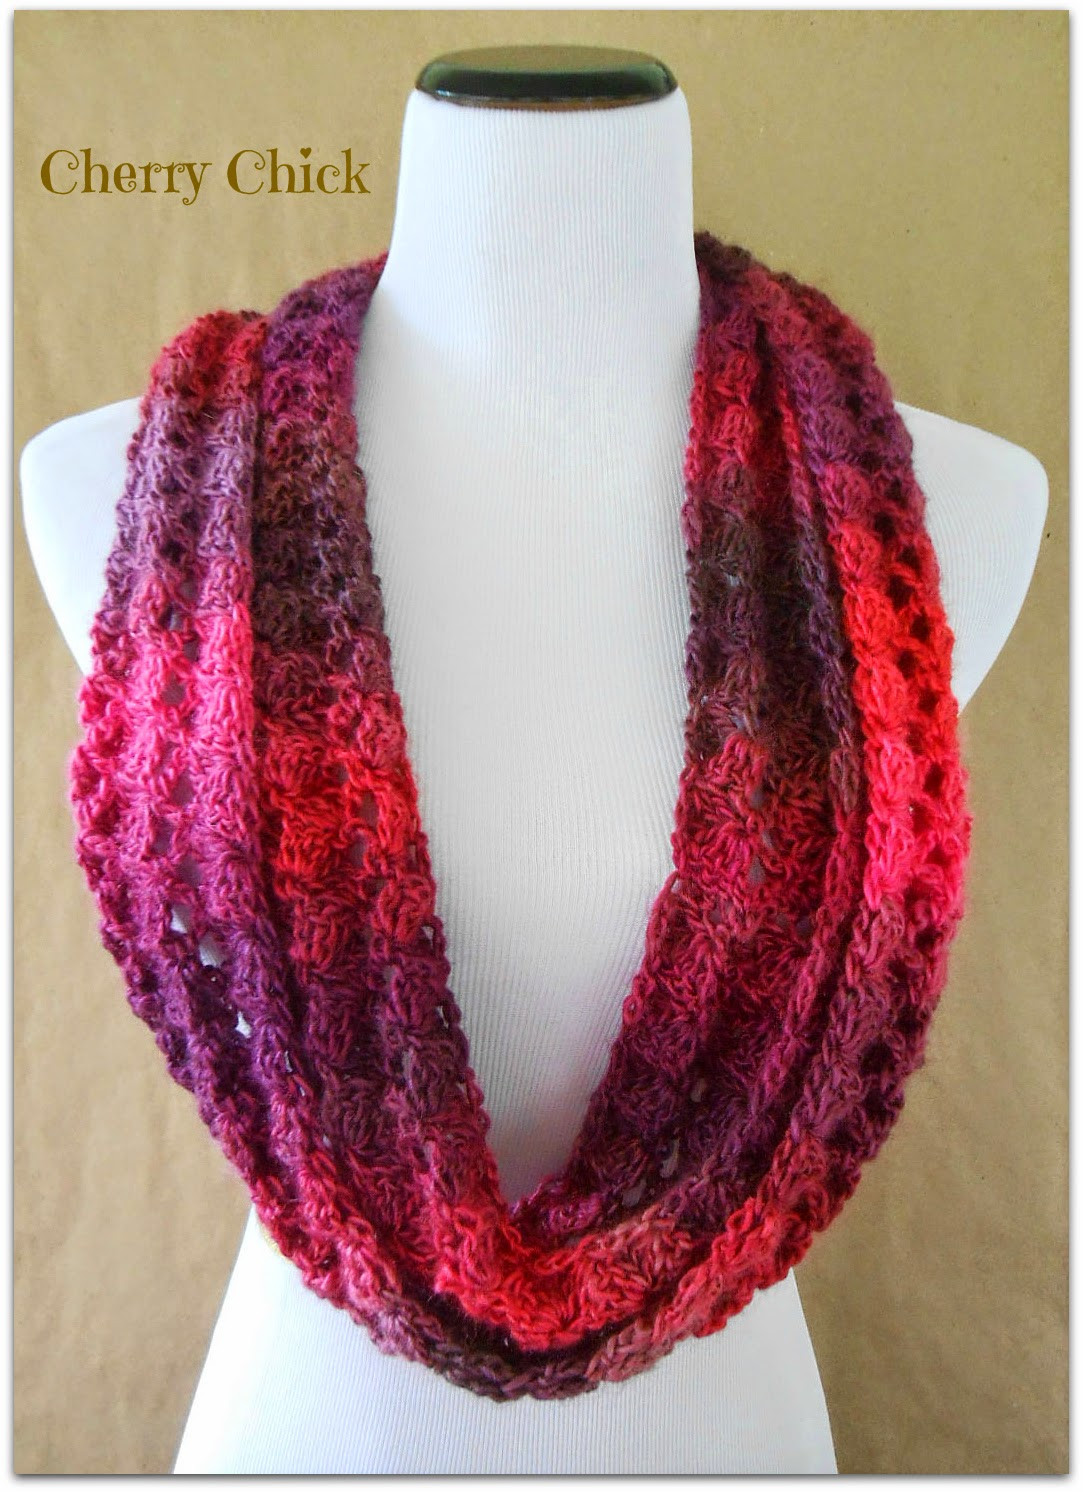 Crochet Infinity Scarves Unique Vintage Cherry Shop New Colors Lacy Crochet Infinity Scarf Of New 44 Photos Crochet Infinity Scarves